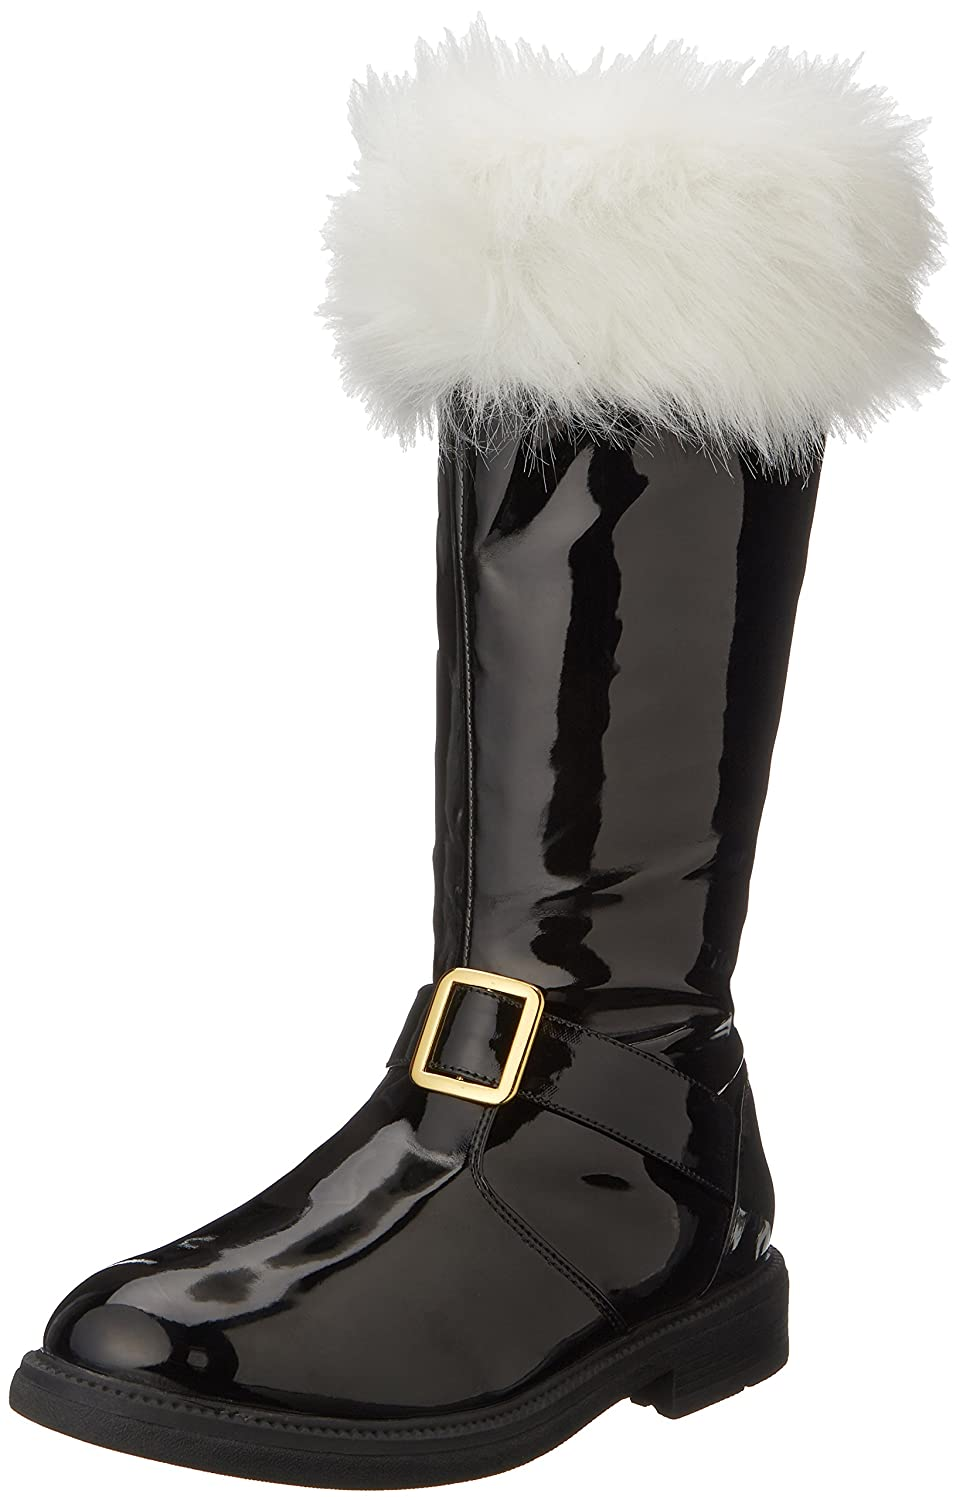 Men's Santa Black Patent Leather Snow Boots